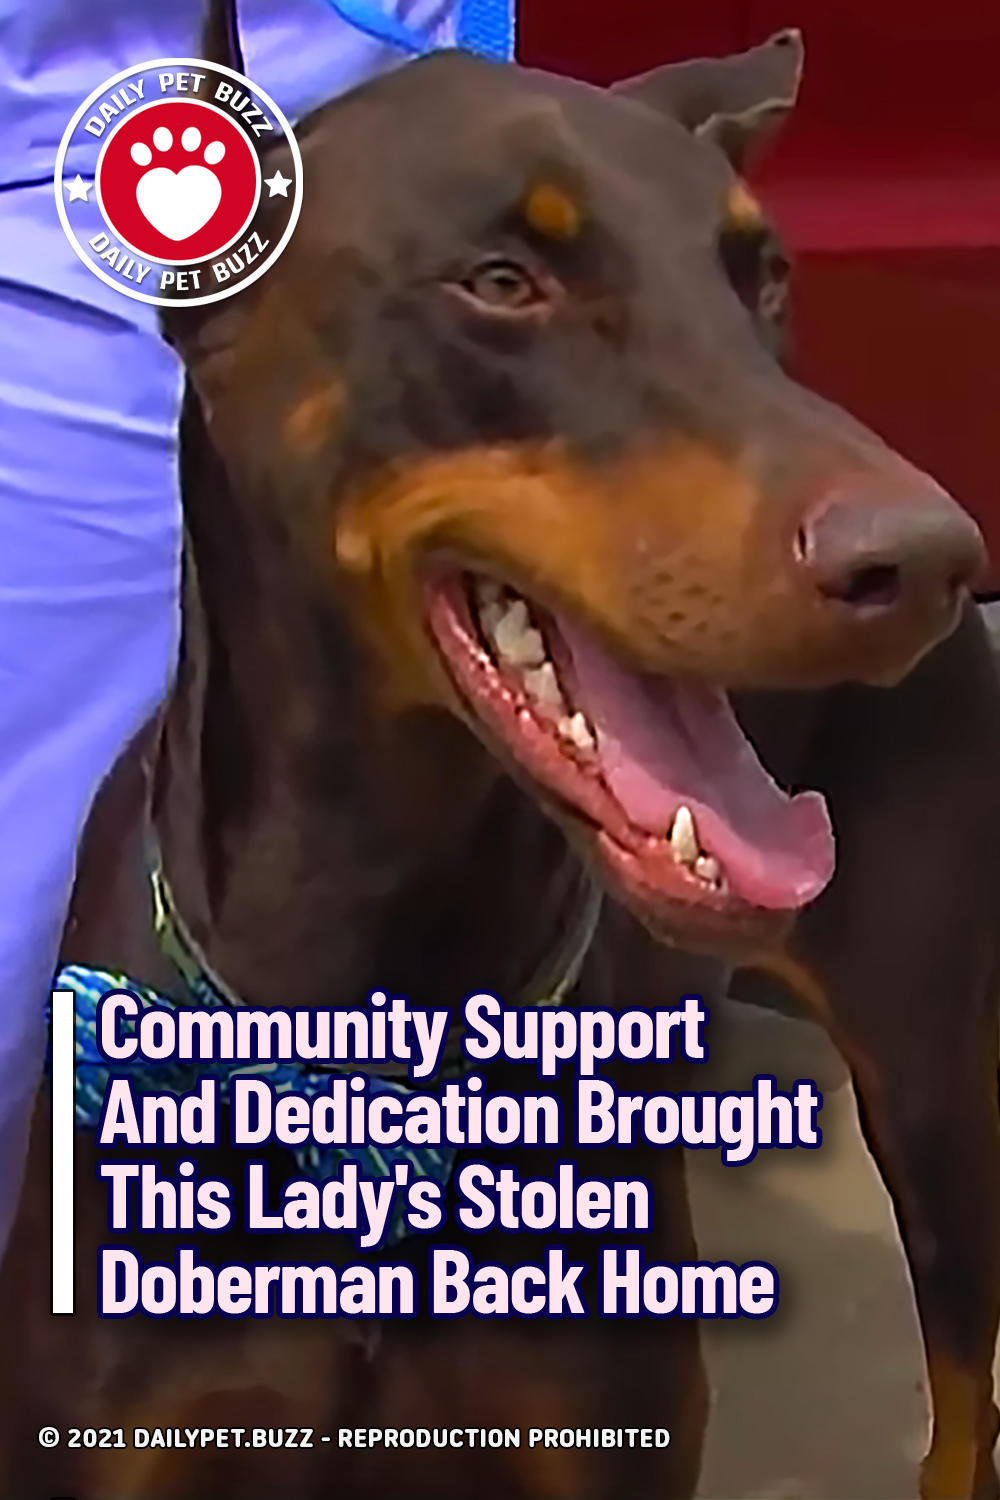 Community Support And Dedication Brought This Lady\'s Stolen Doberman Back Home